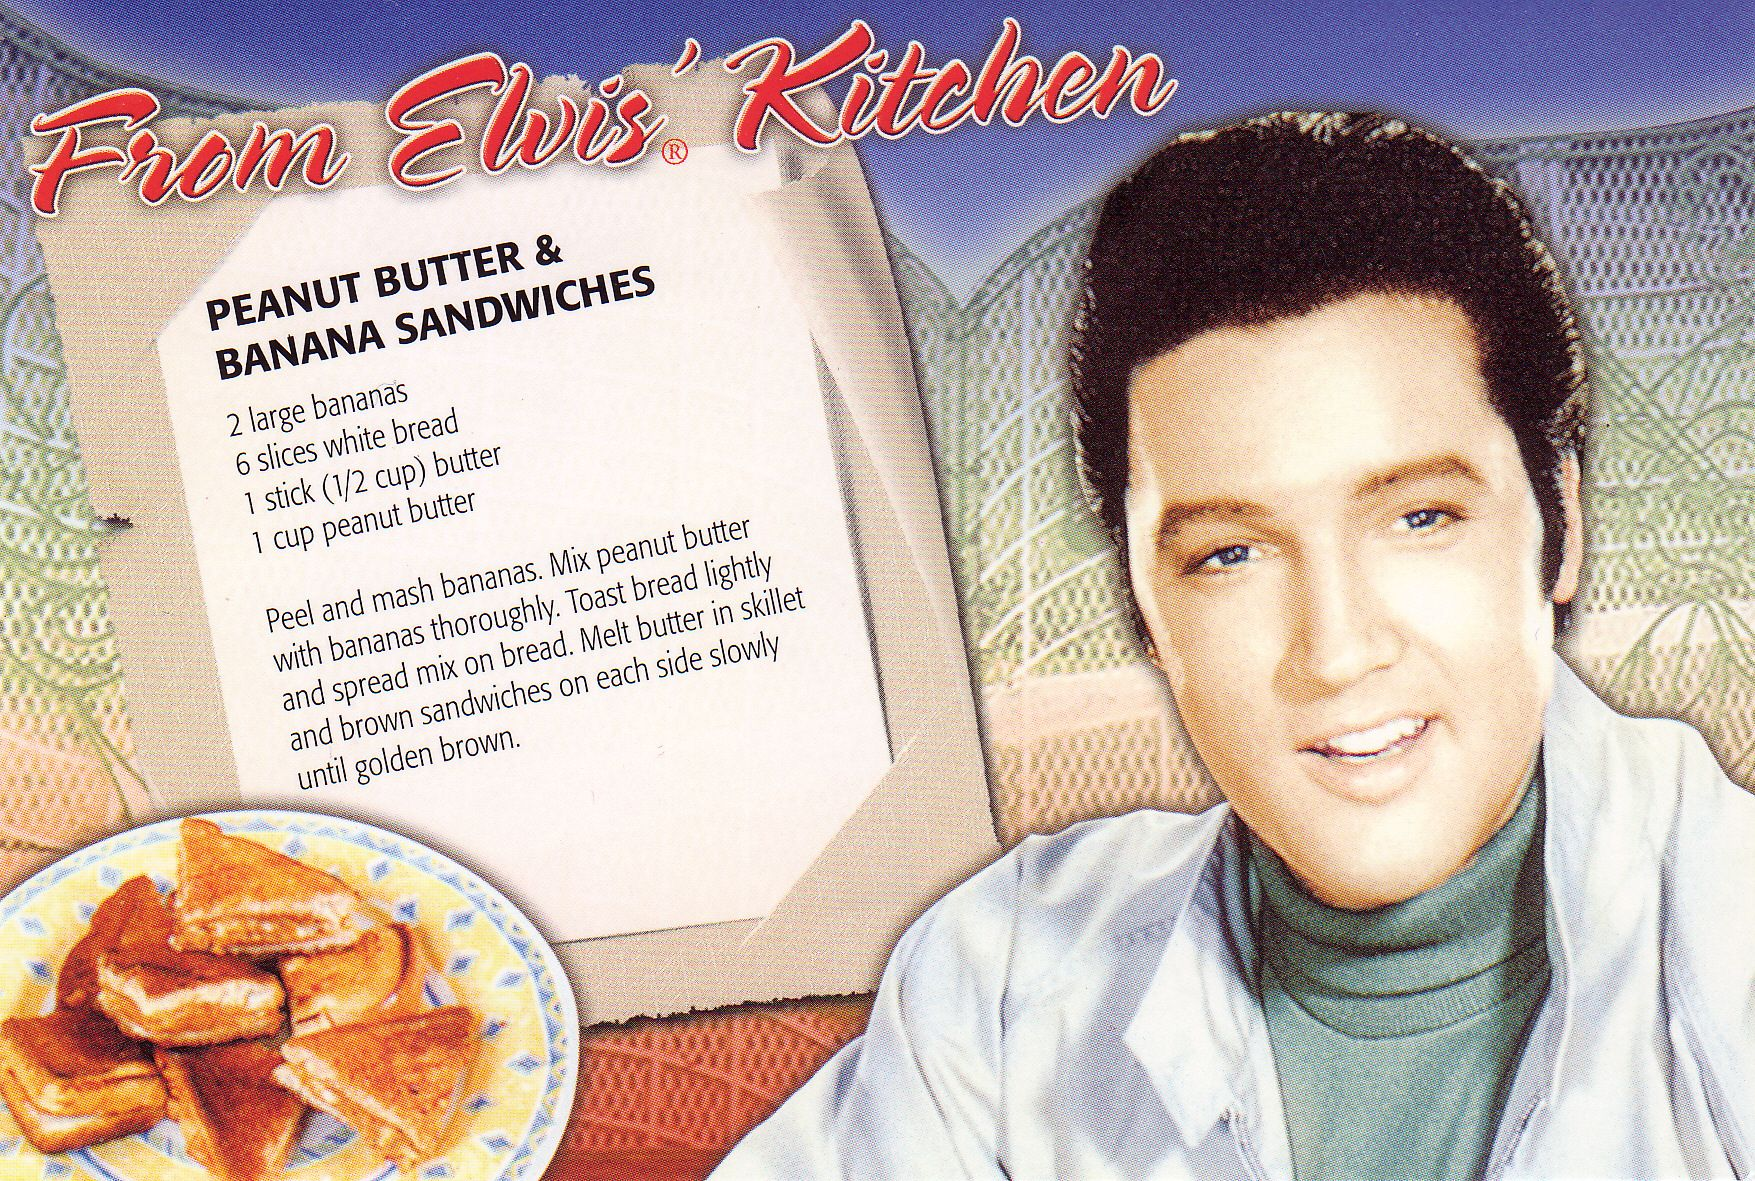 Elvis Recipe Card Banana Sandwich Peanut Butter Banana Sandwich Vintage Recipes